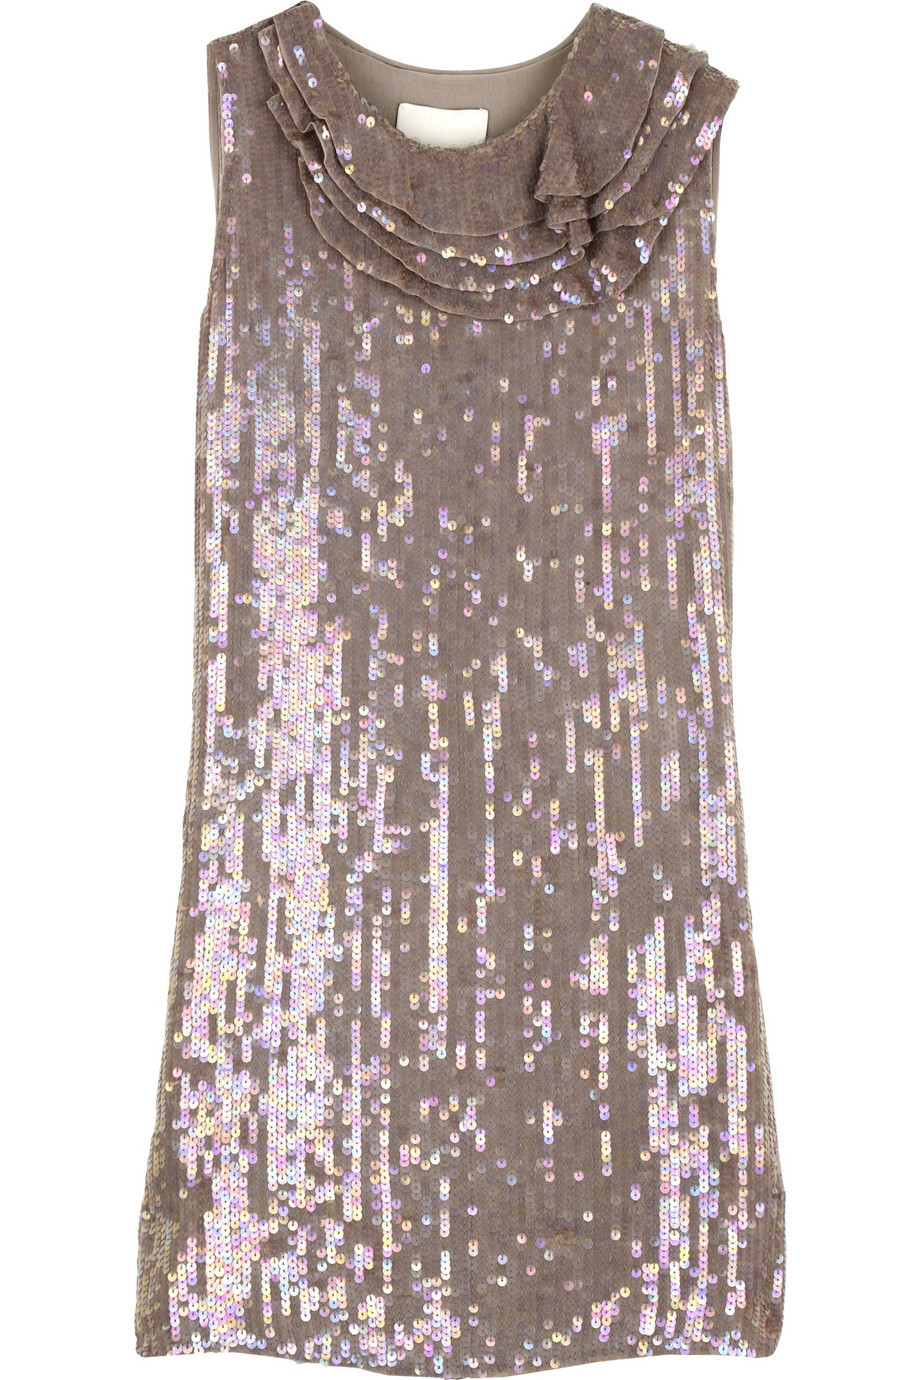 3.1 Phillip Lim Sequin-covered dress | NET-A-PORTER.COM from net-a-porter.com